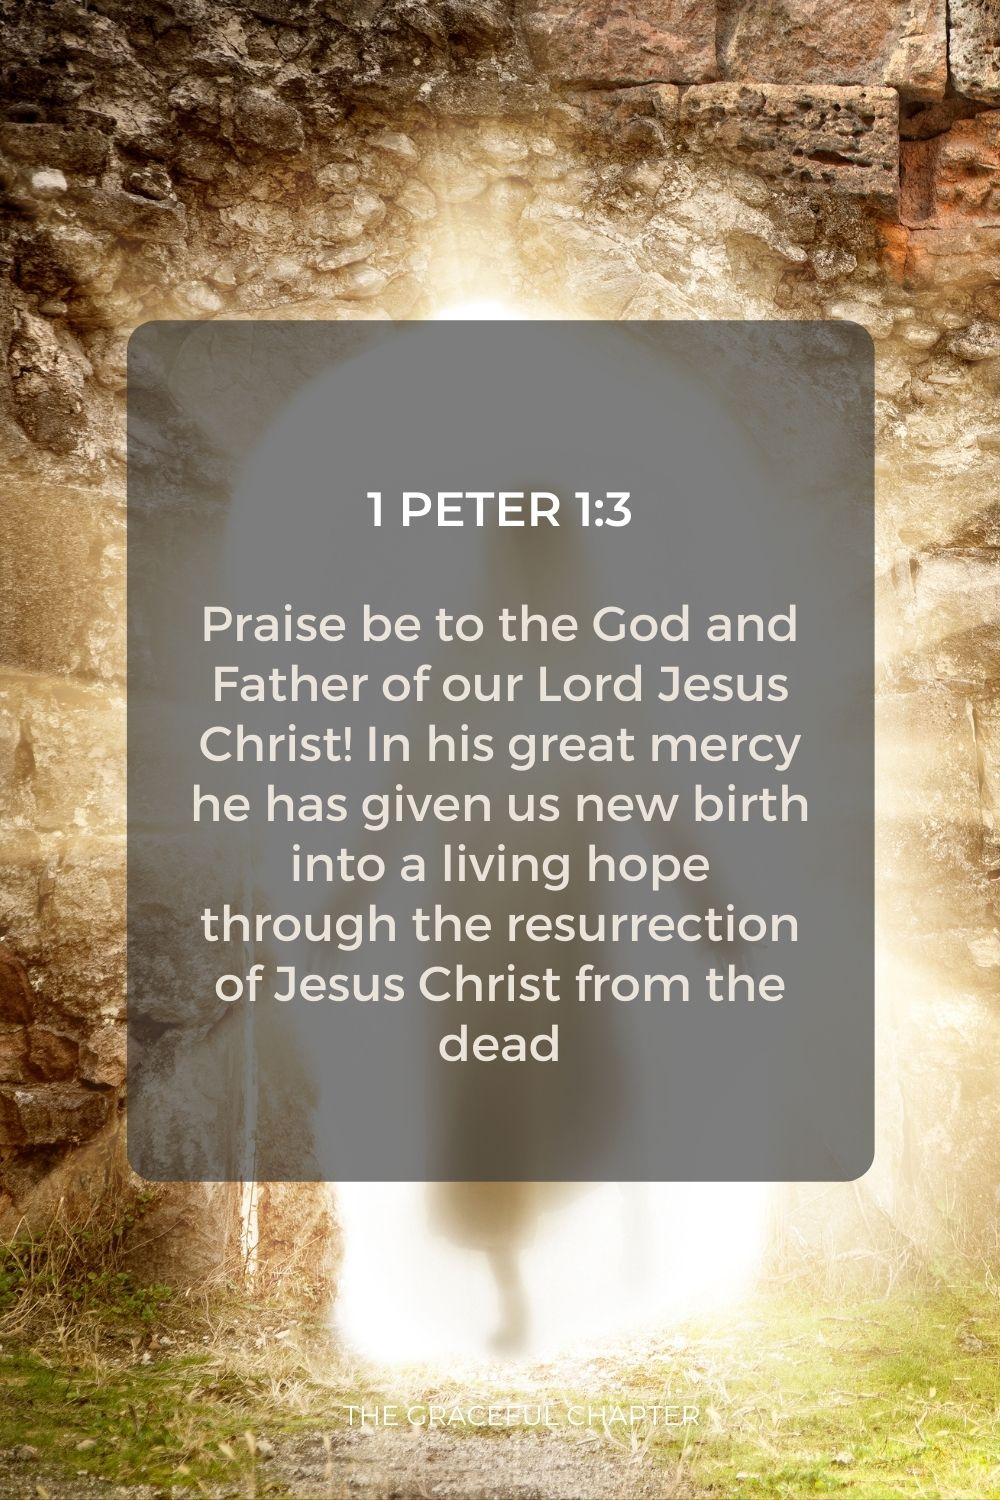 Praise be to the God and Father of our Lord Jesus Christ! In his great mercy he has given us new birth into a living hope through the resurrection of Jesus Christ from the dead 1 Peter 1:3